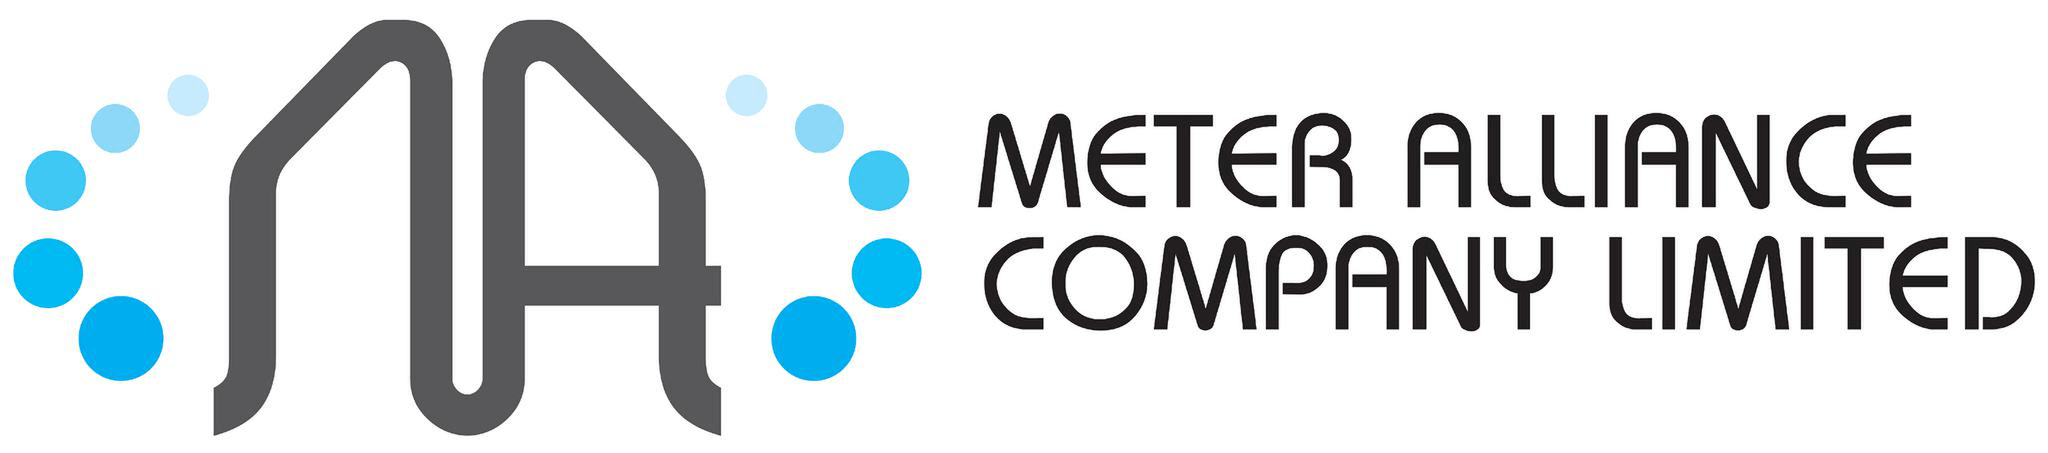 METER ALLIANCE COMPANY LIMITED